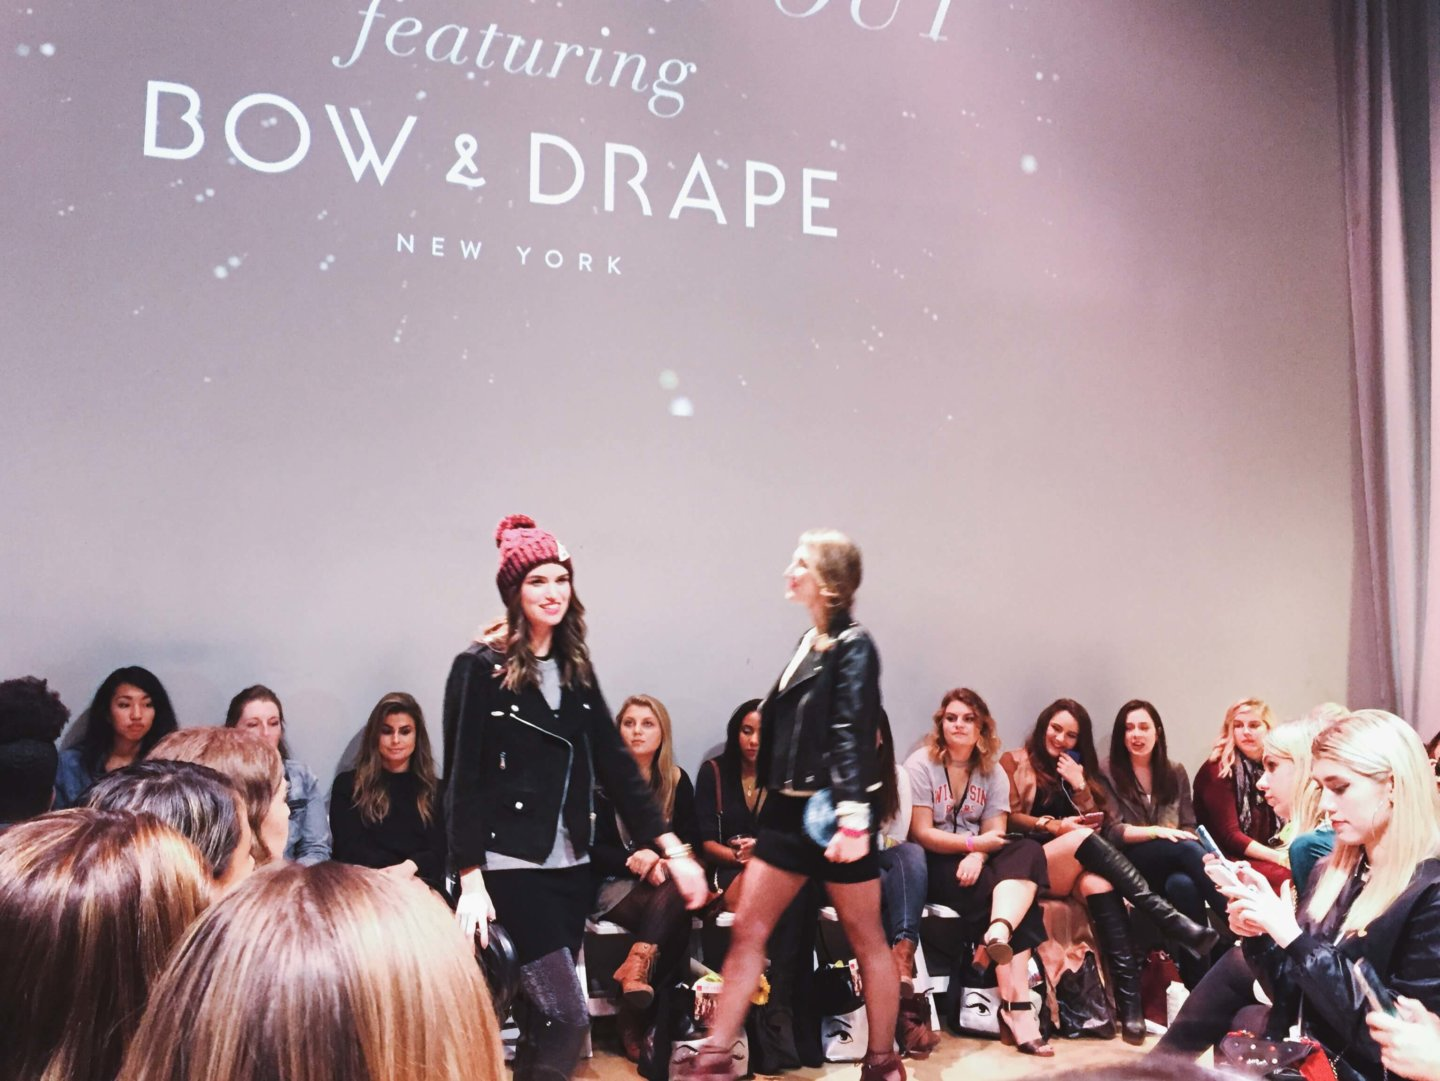 College Fashion Week in Chicago Runway Show featuring Bow + Drape.